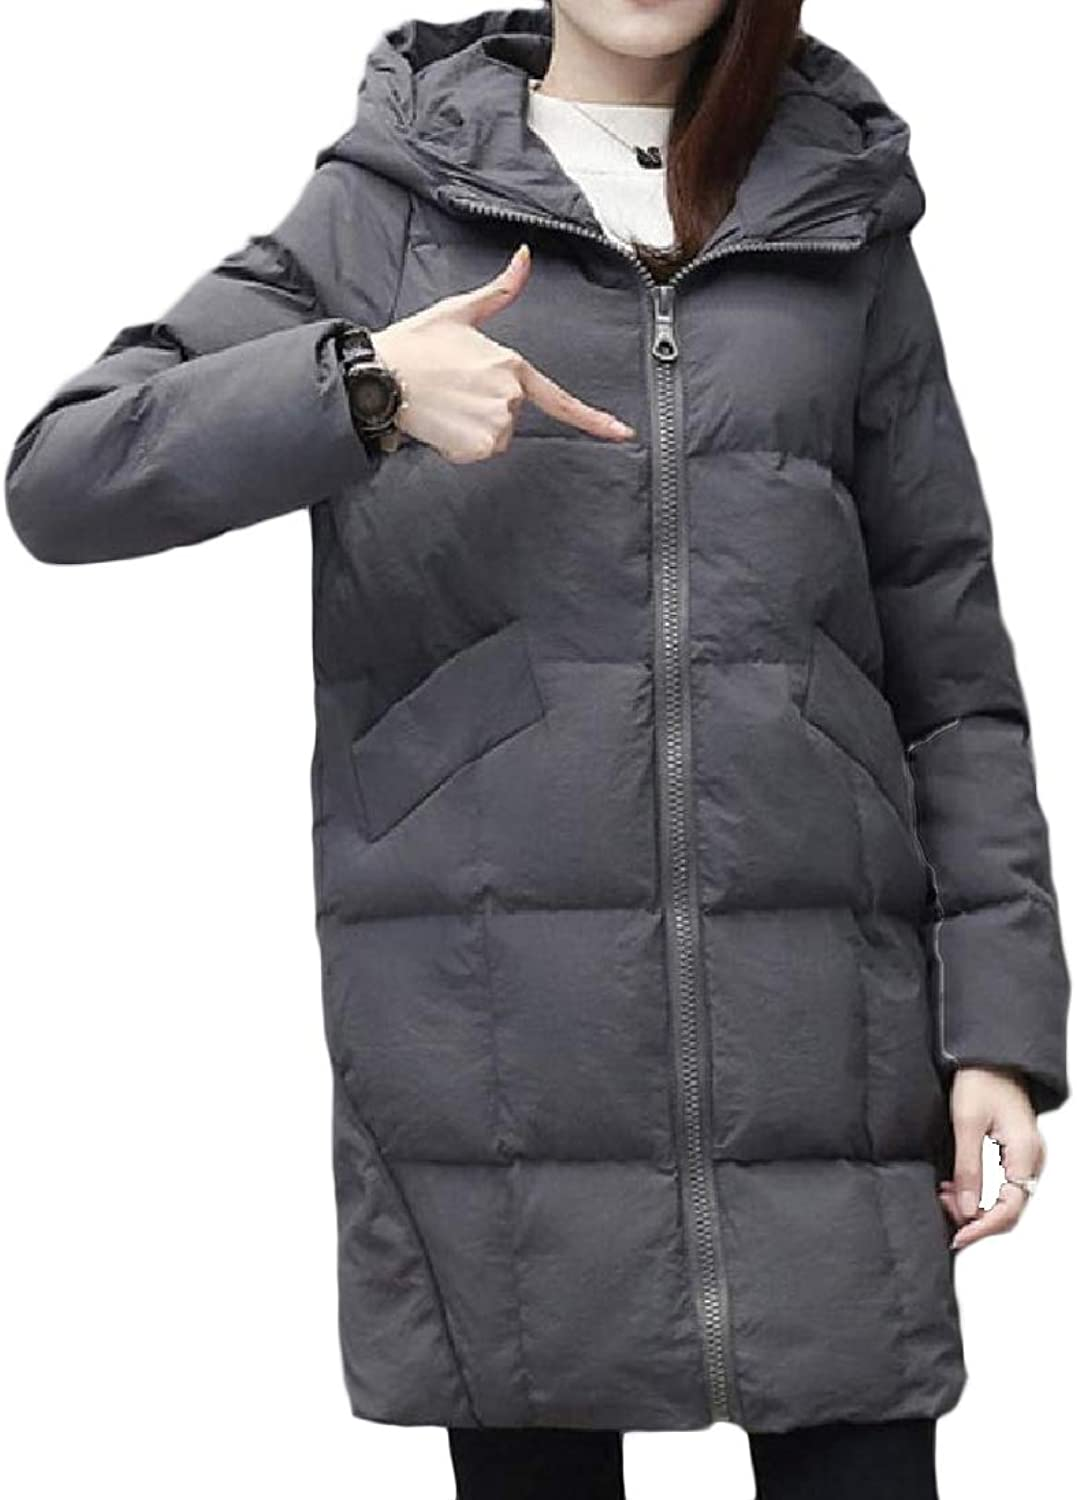 Cheelot Womens Warm Quilted Puffer Topcoat Plus Size Wadded Jacket